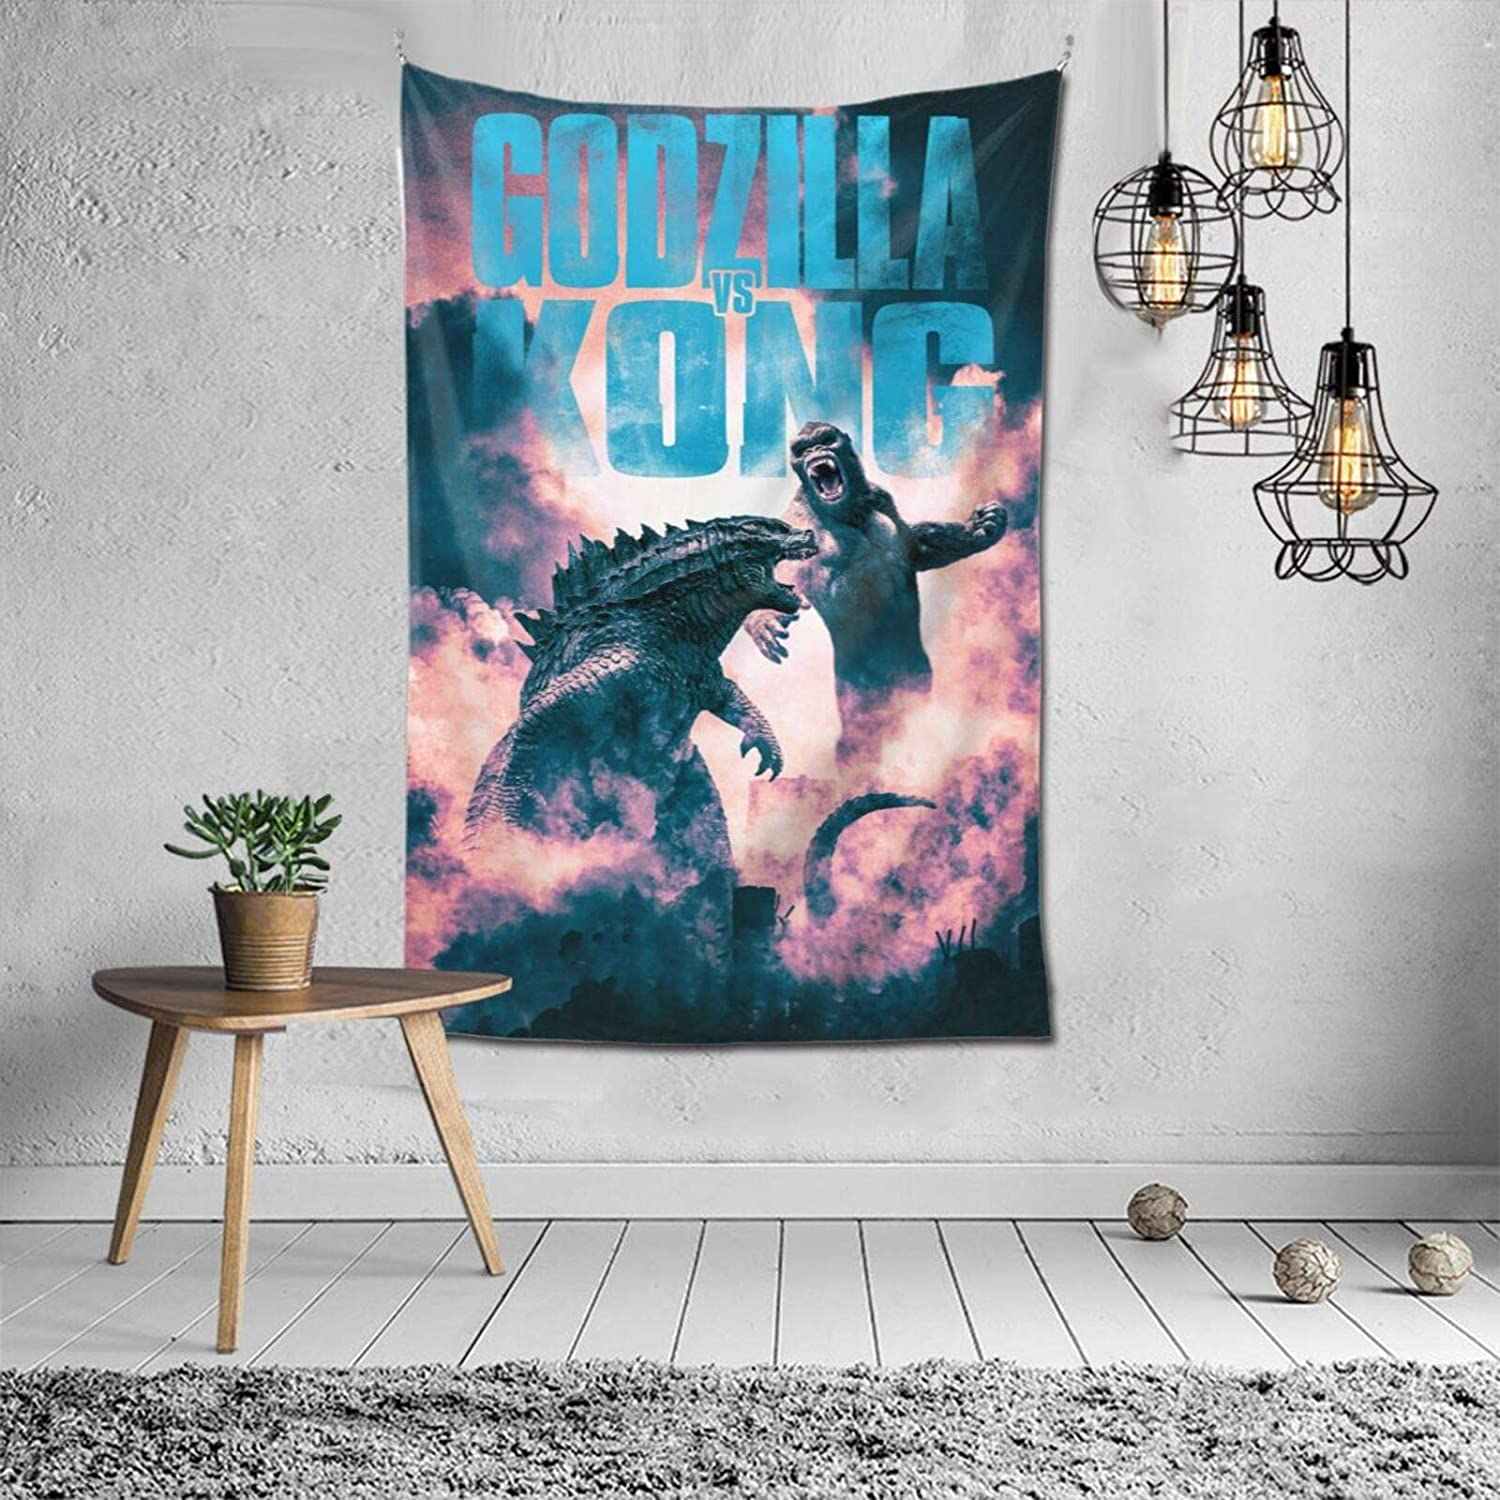 Go-dzilla VS K-ong Tapestry Hanging Wall Banner 3D Printing Wall Hanging Blanket,Movie Monster ThemeRoom decoration,Wall Decoration for Living Room Bedroom Colorful Home Decor 60x40 Inches